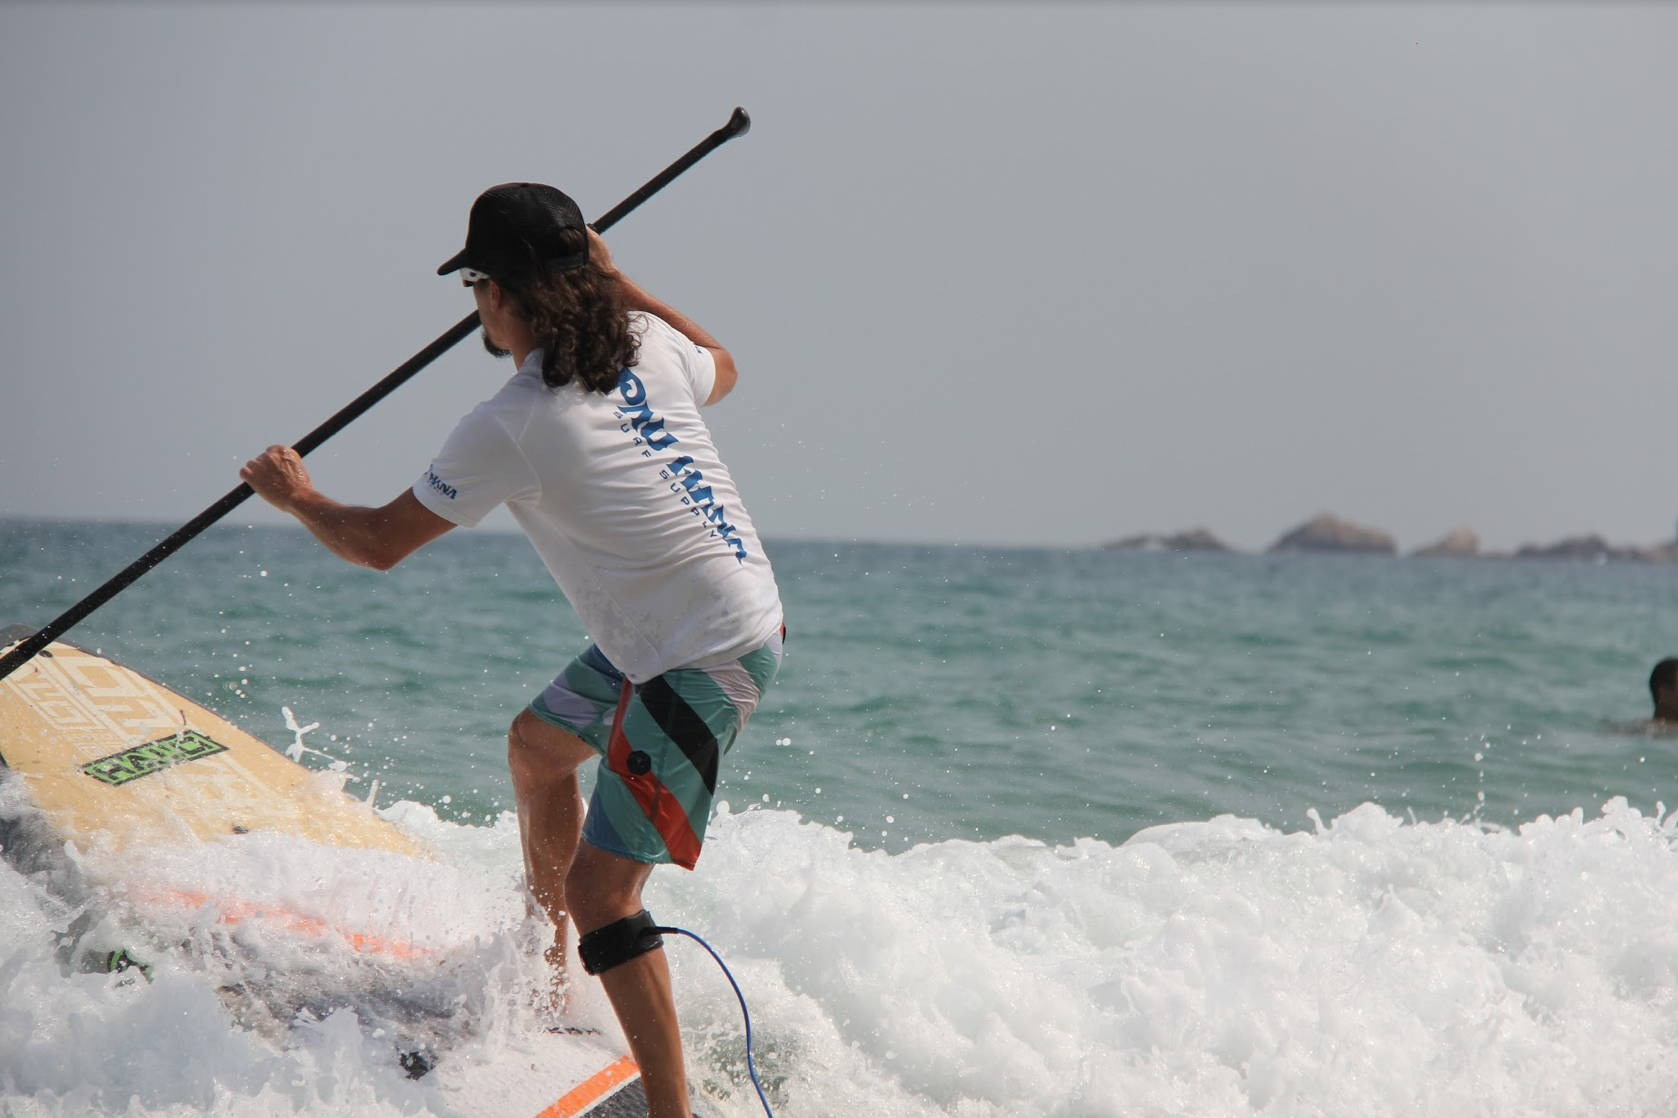 Todd surfing on his surf sup in china catching tropical waves